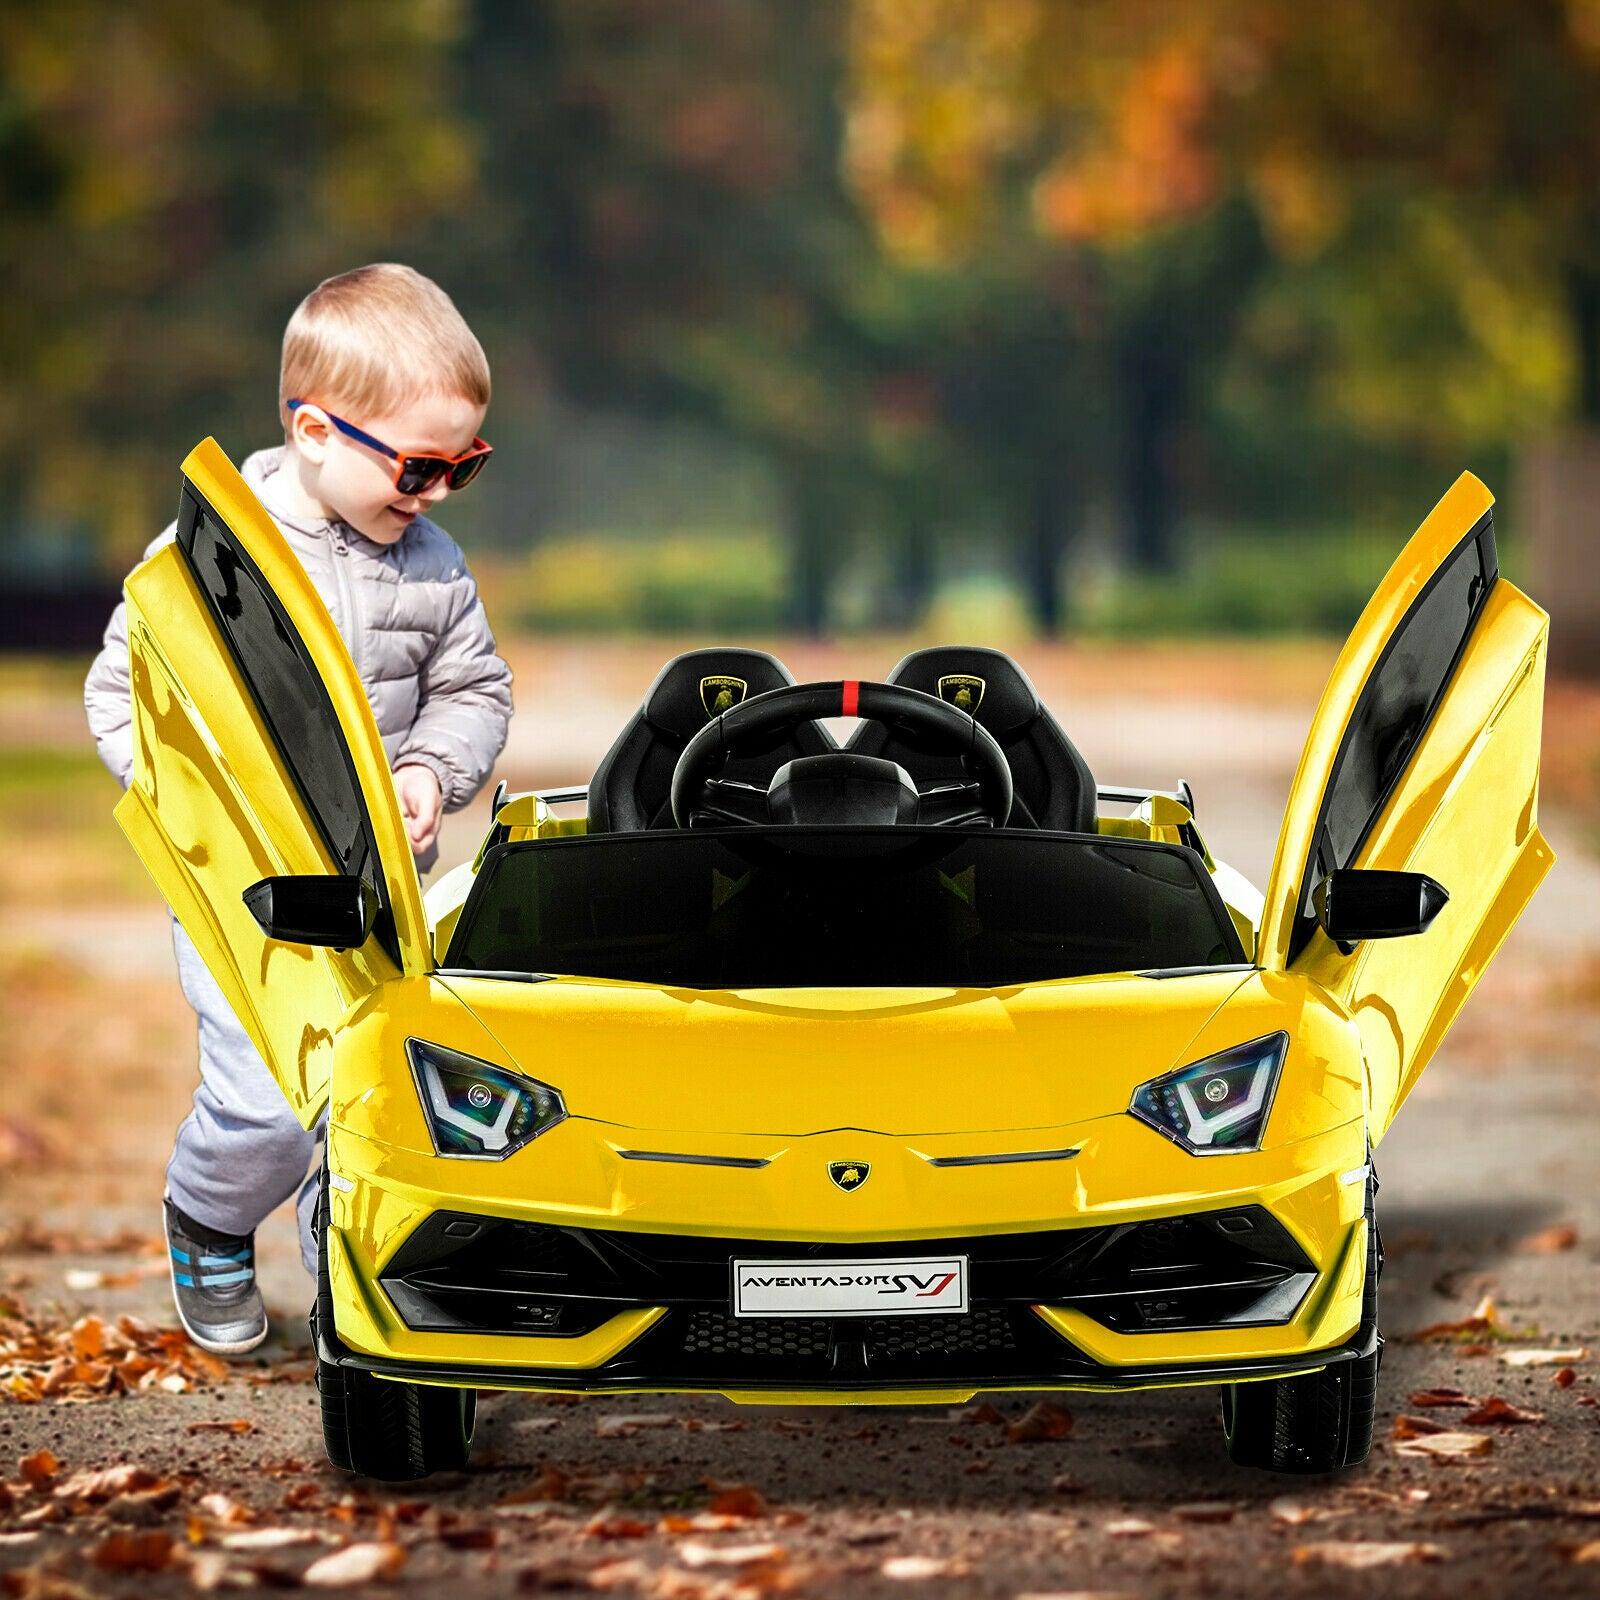 Lamborghini Kids Electric Car Motorized Children Power 12V Electric Ride On Cars